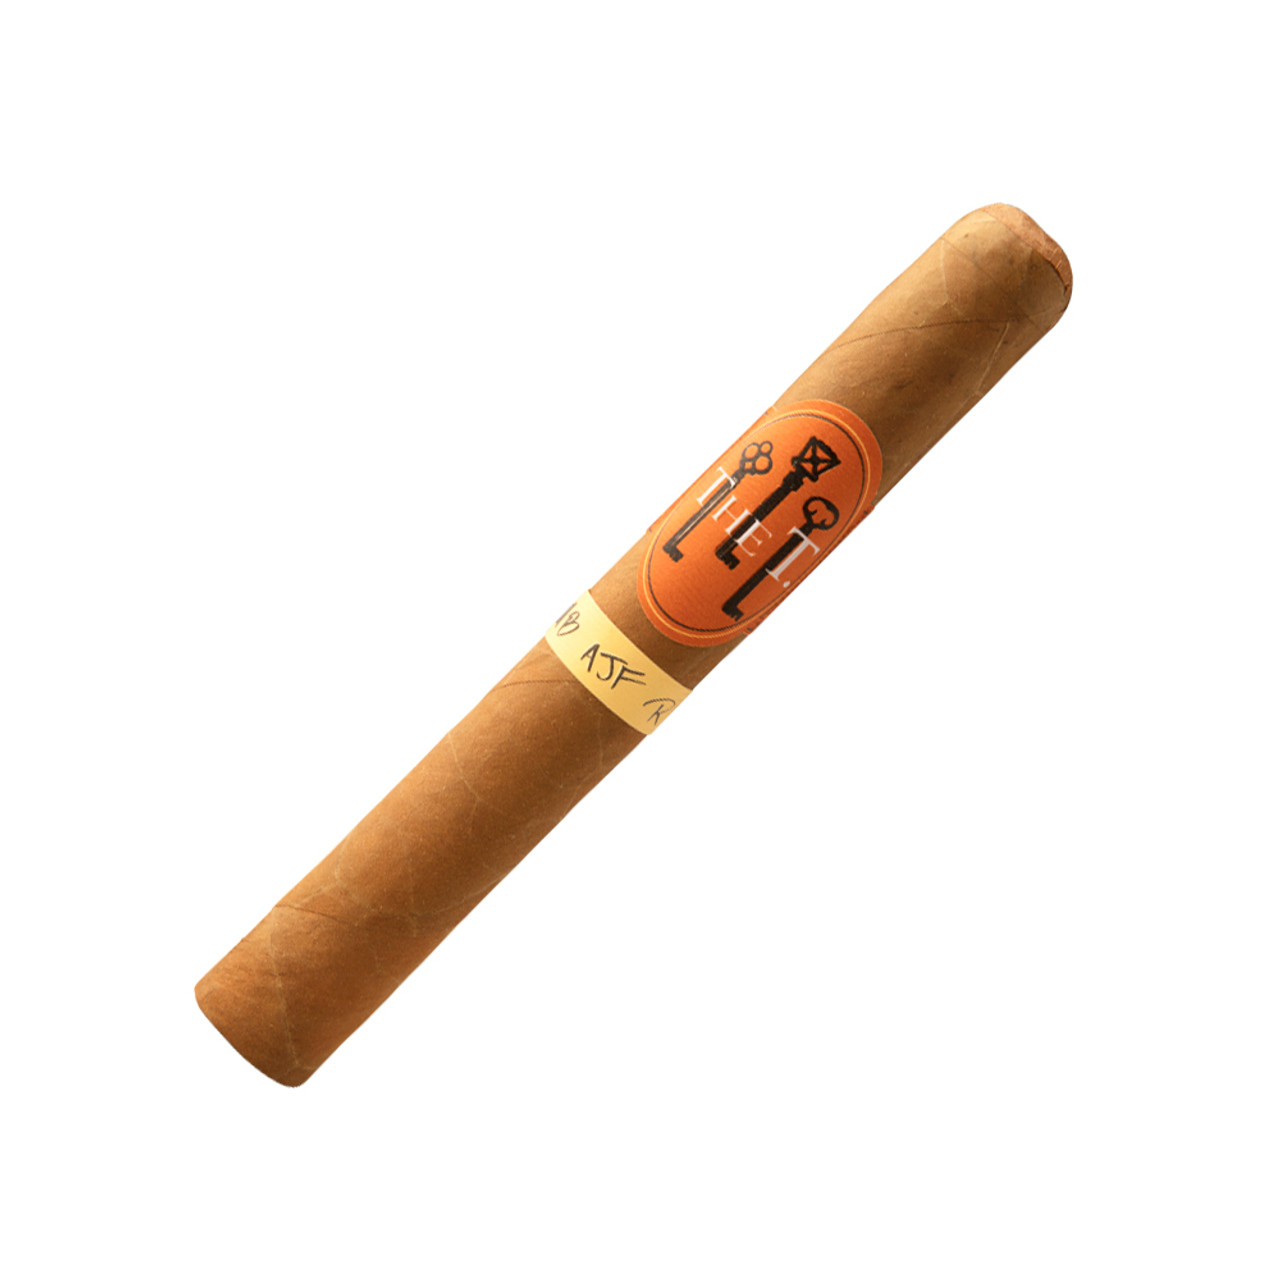 Caldwell The T. Connecticut Toro Cigars - 6 x 50 (Box of 20)